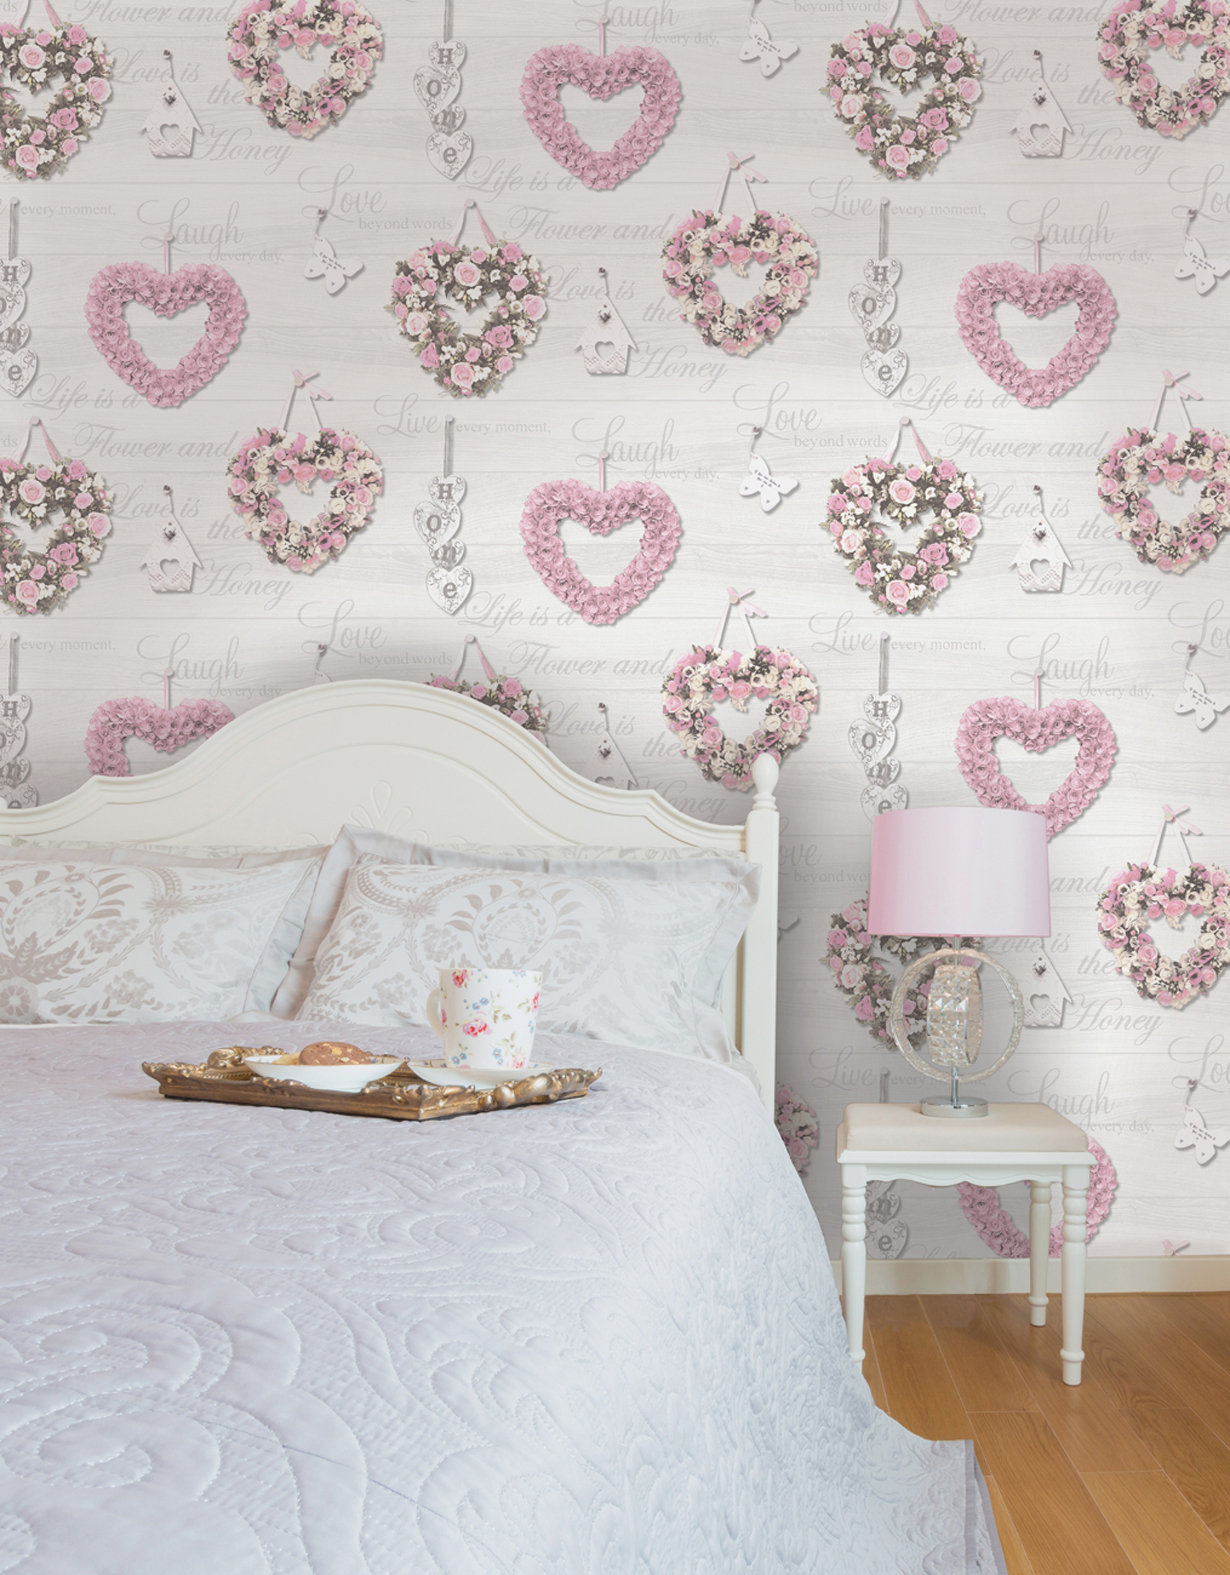 Incredible Gracie Dove Love Hearts Home Calligraphy Wood Feature Wallpaper Holden 12020 Interior Design Ideas Gentotryabchikinfo